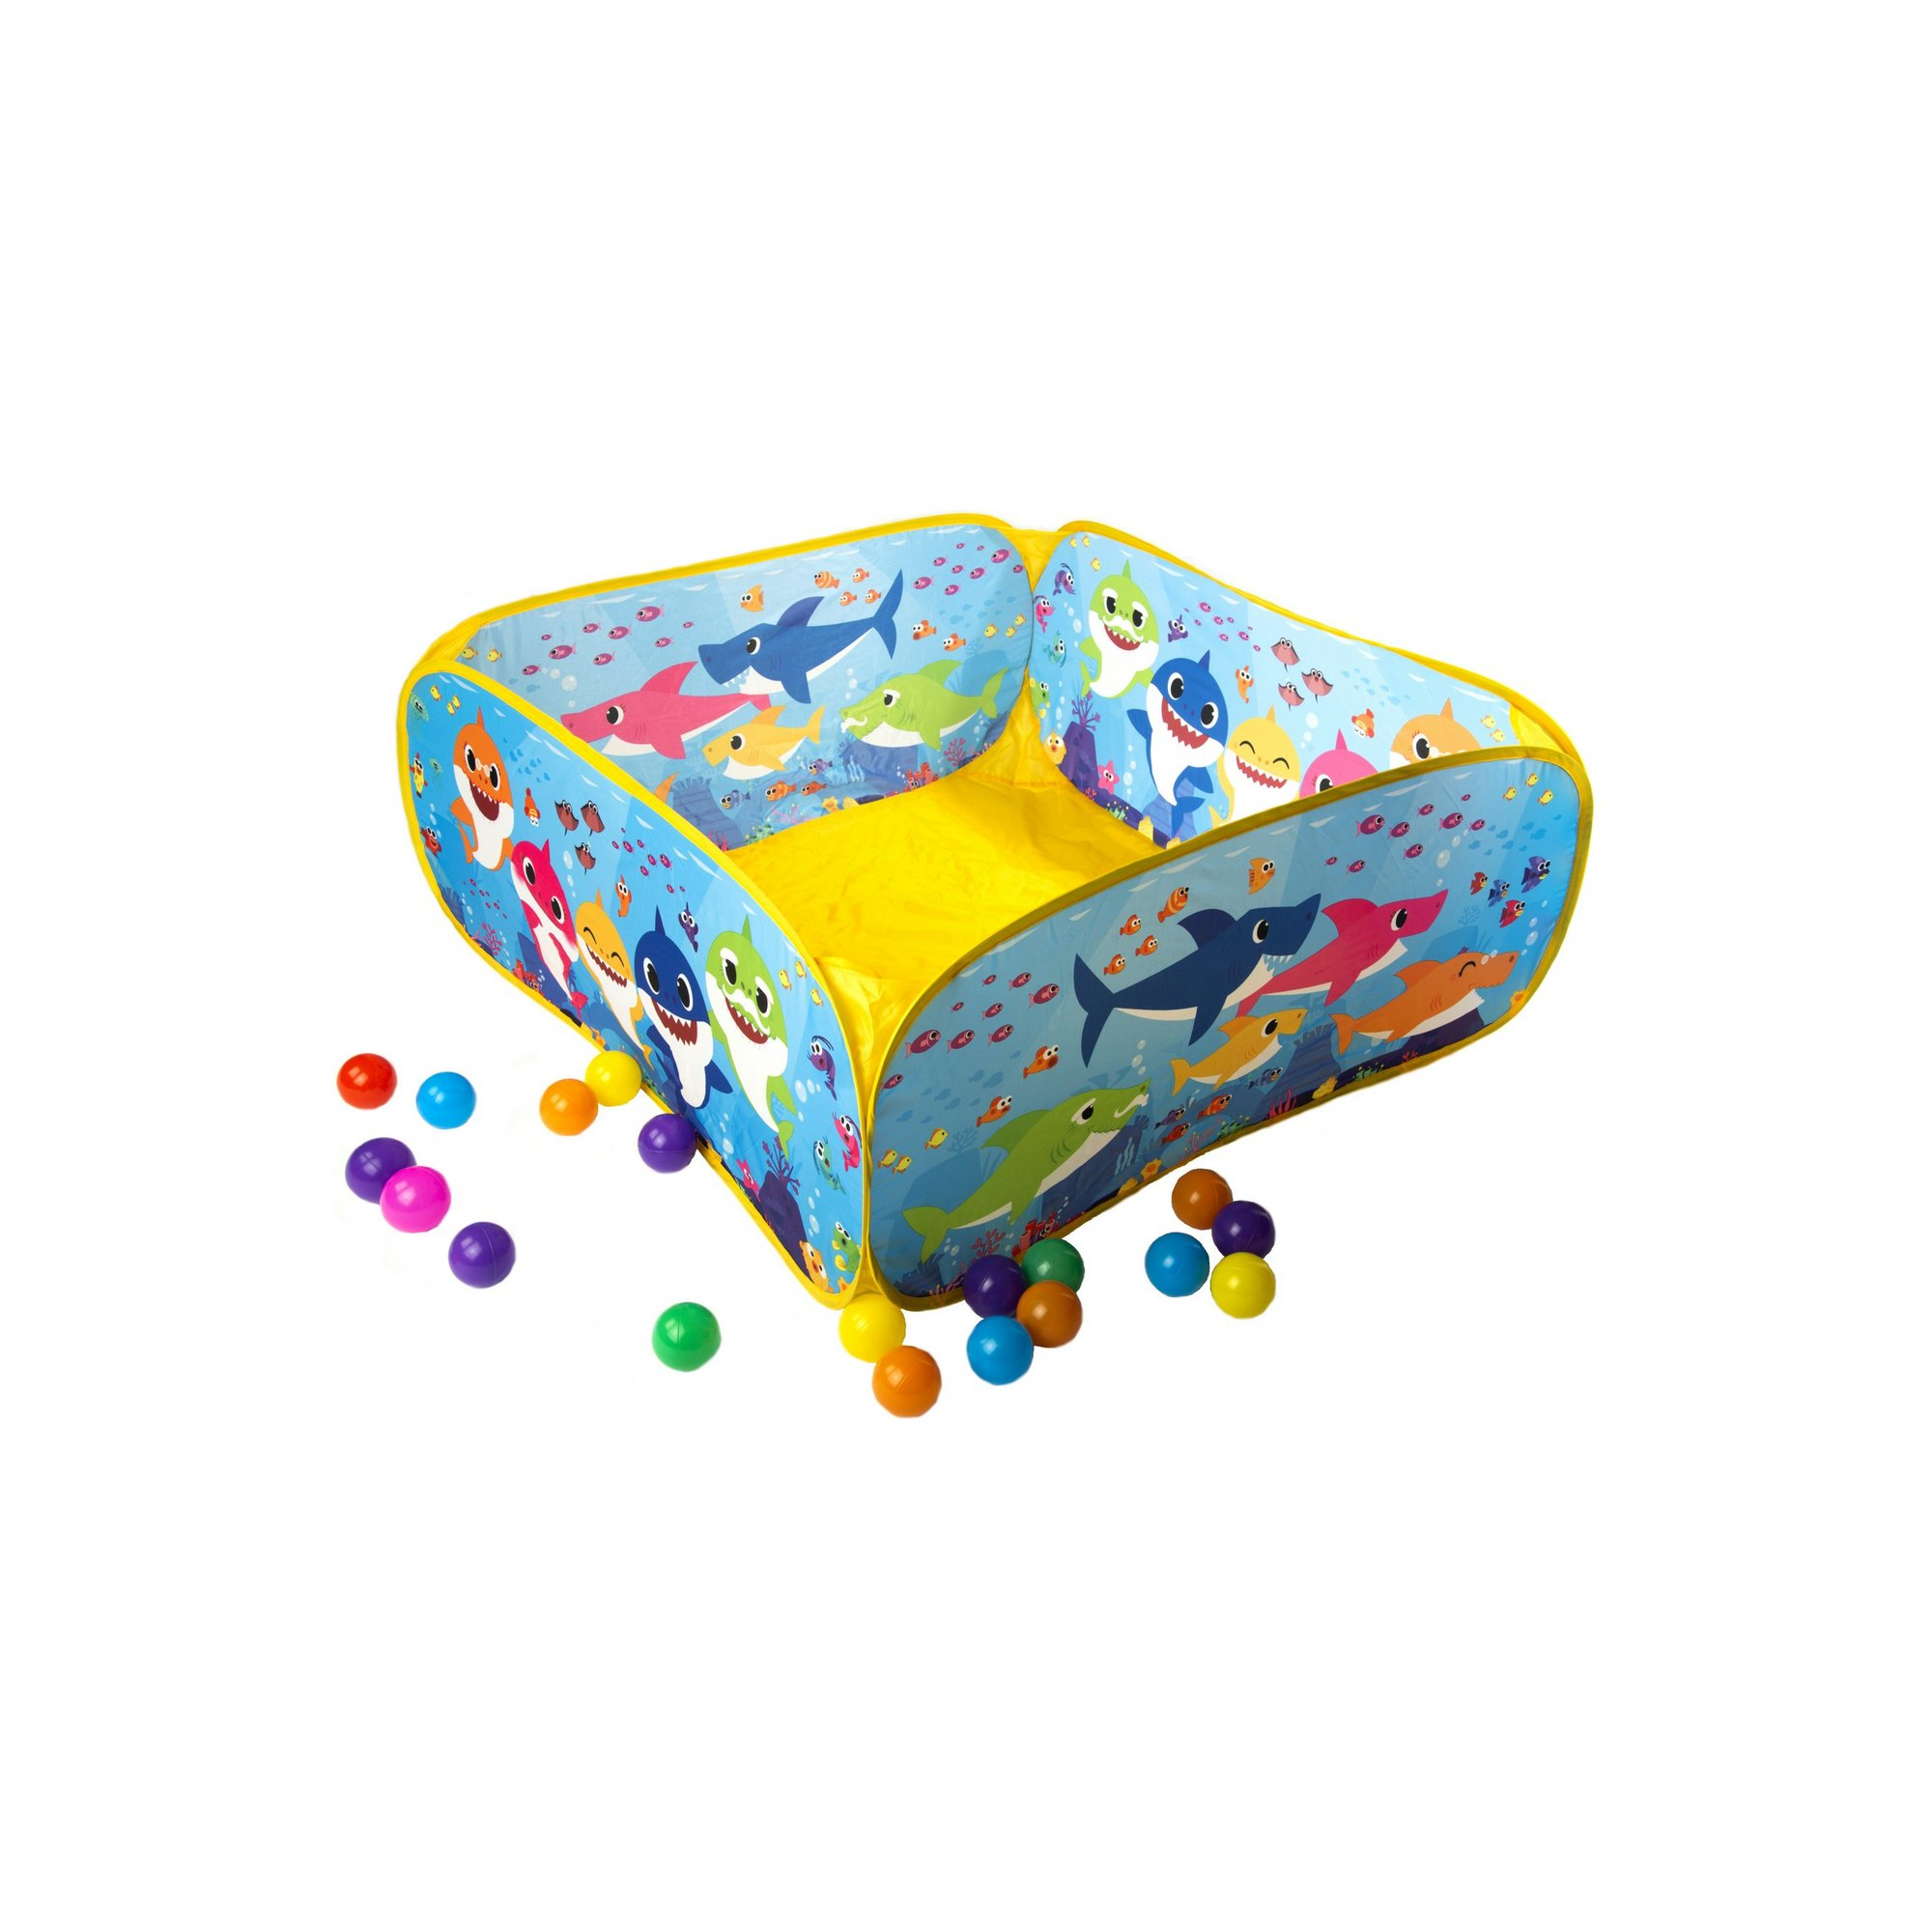 Image of Baby Shark Ball Pit with 20 Balls